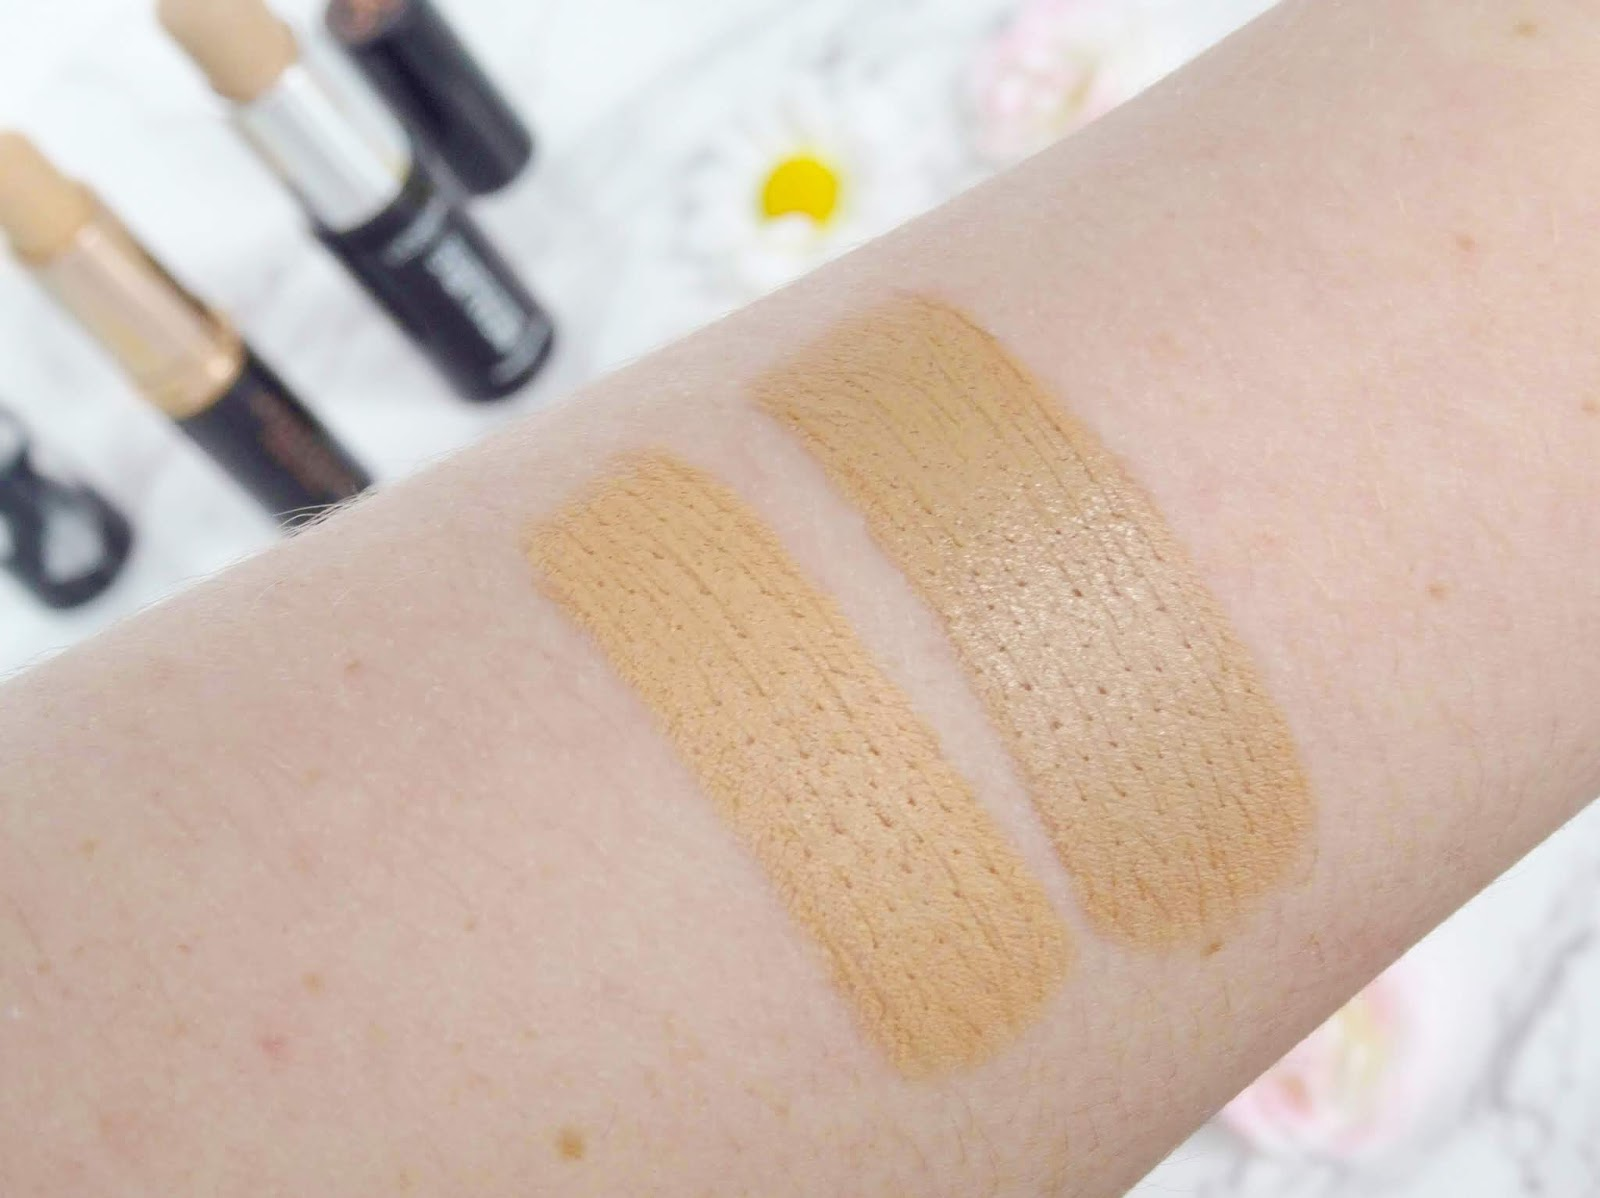 ABHs Stick Foundation in Beige Swatch and L'Oreal Infallible Stick Foundation in 160 Swatch